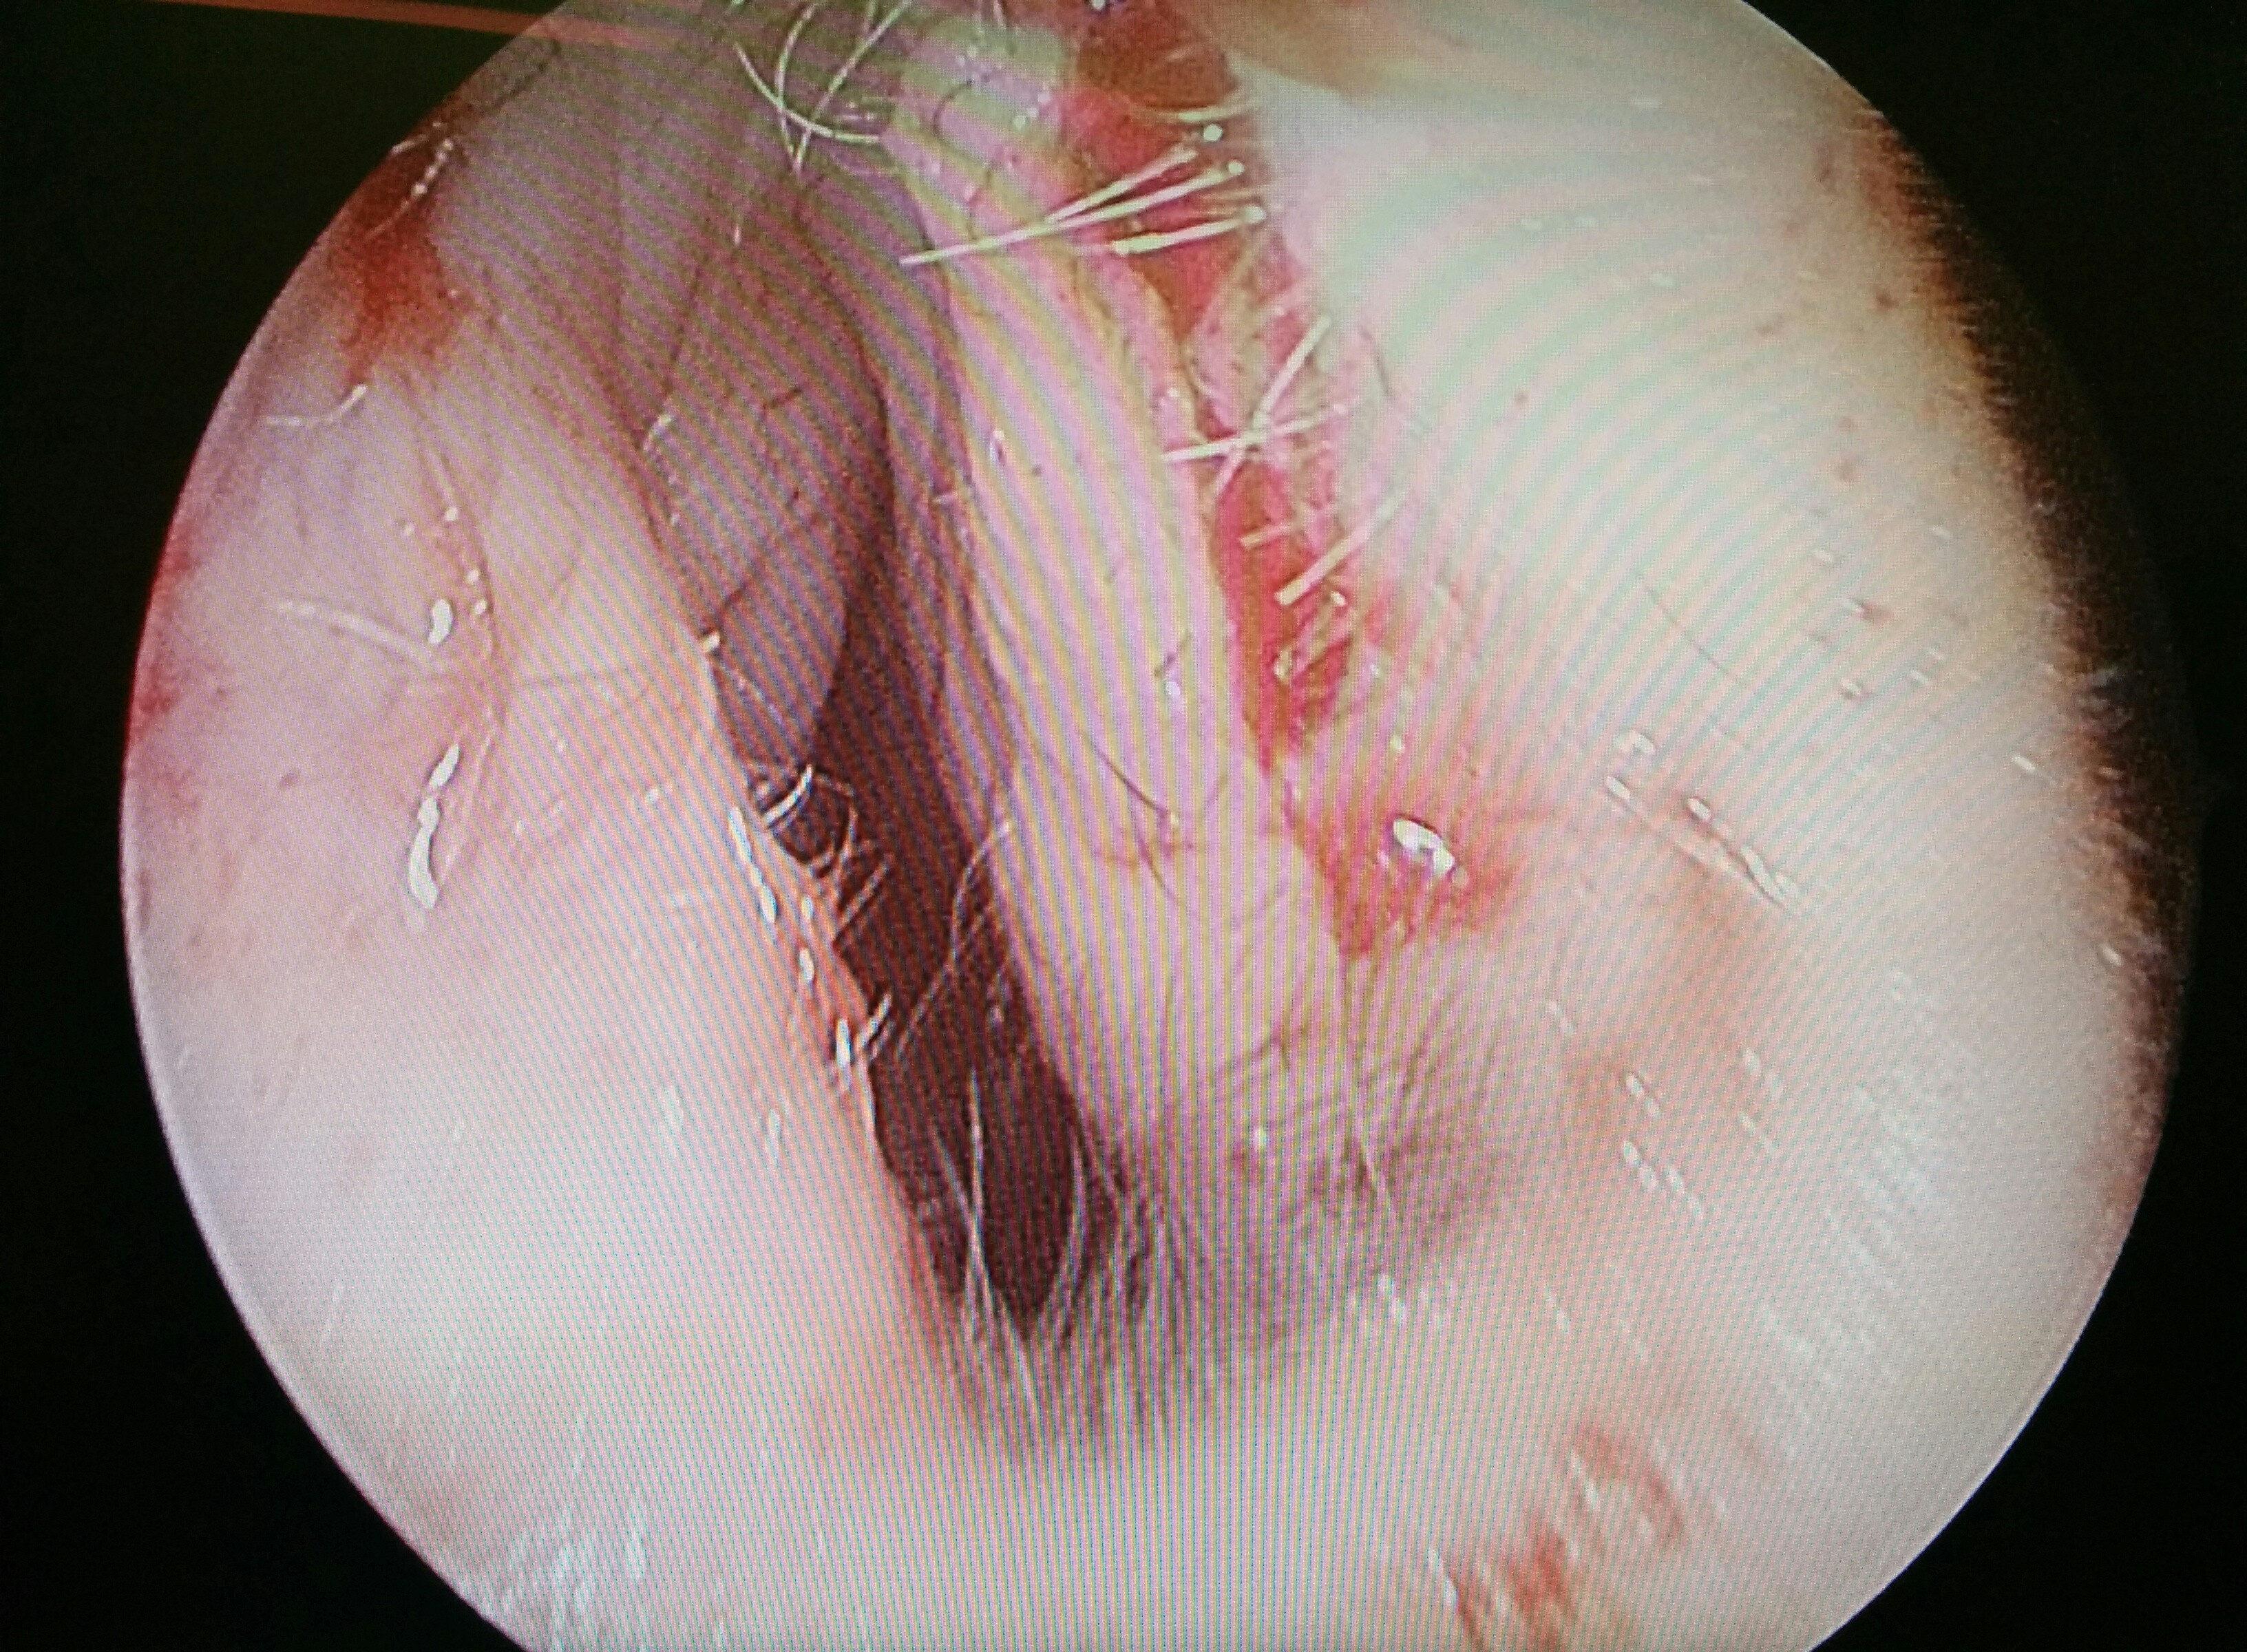 Opening of left nostril following reconstruction